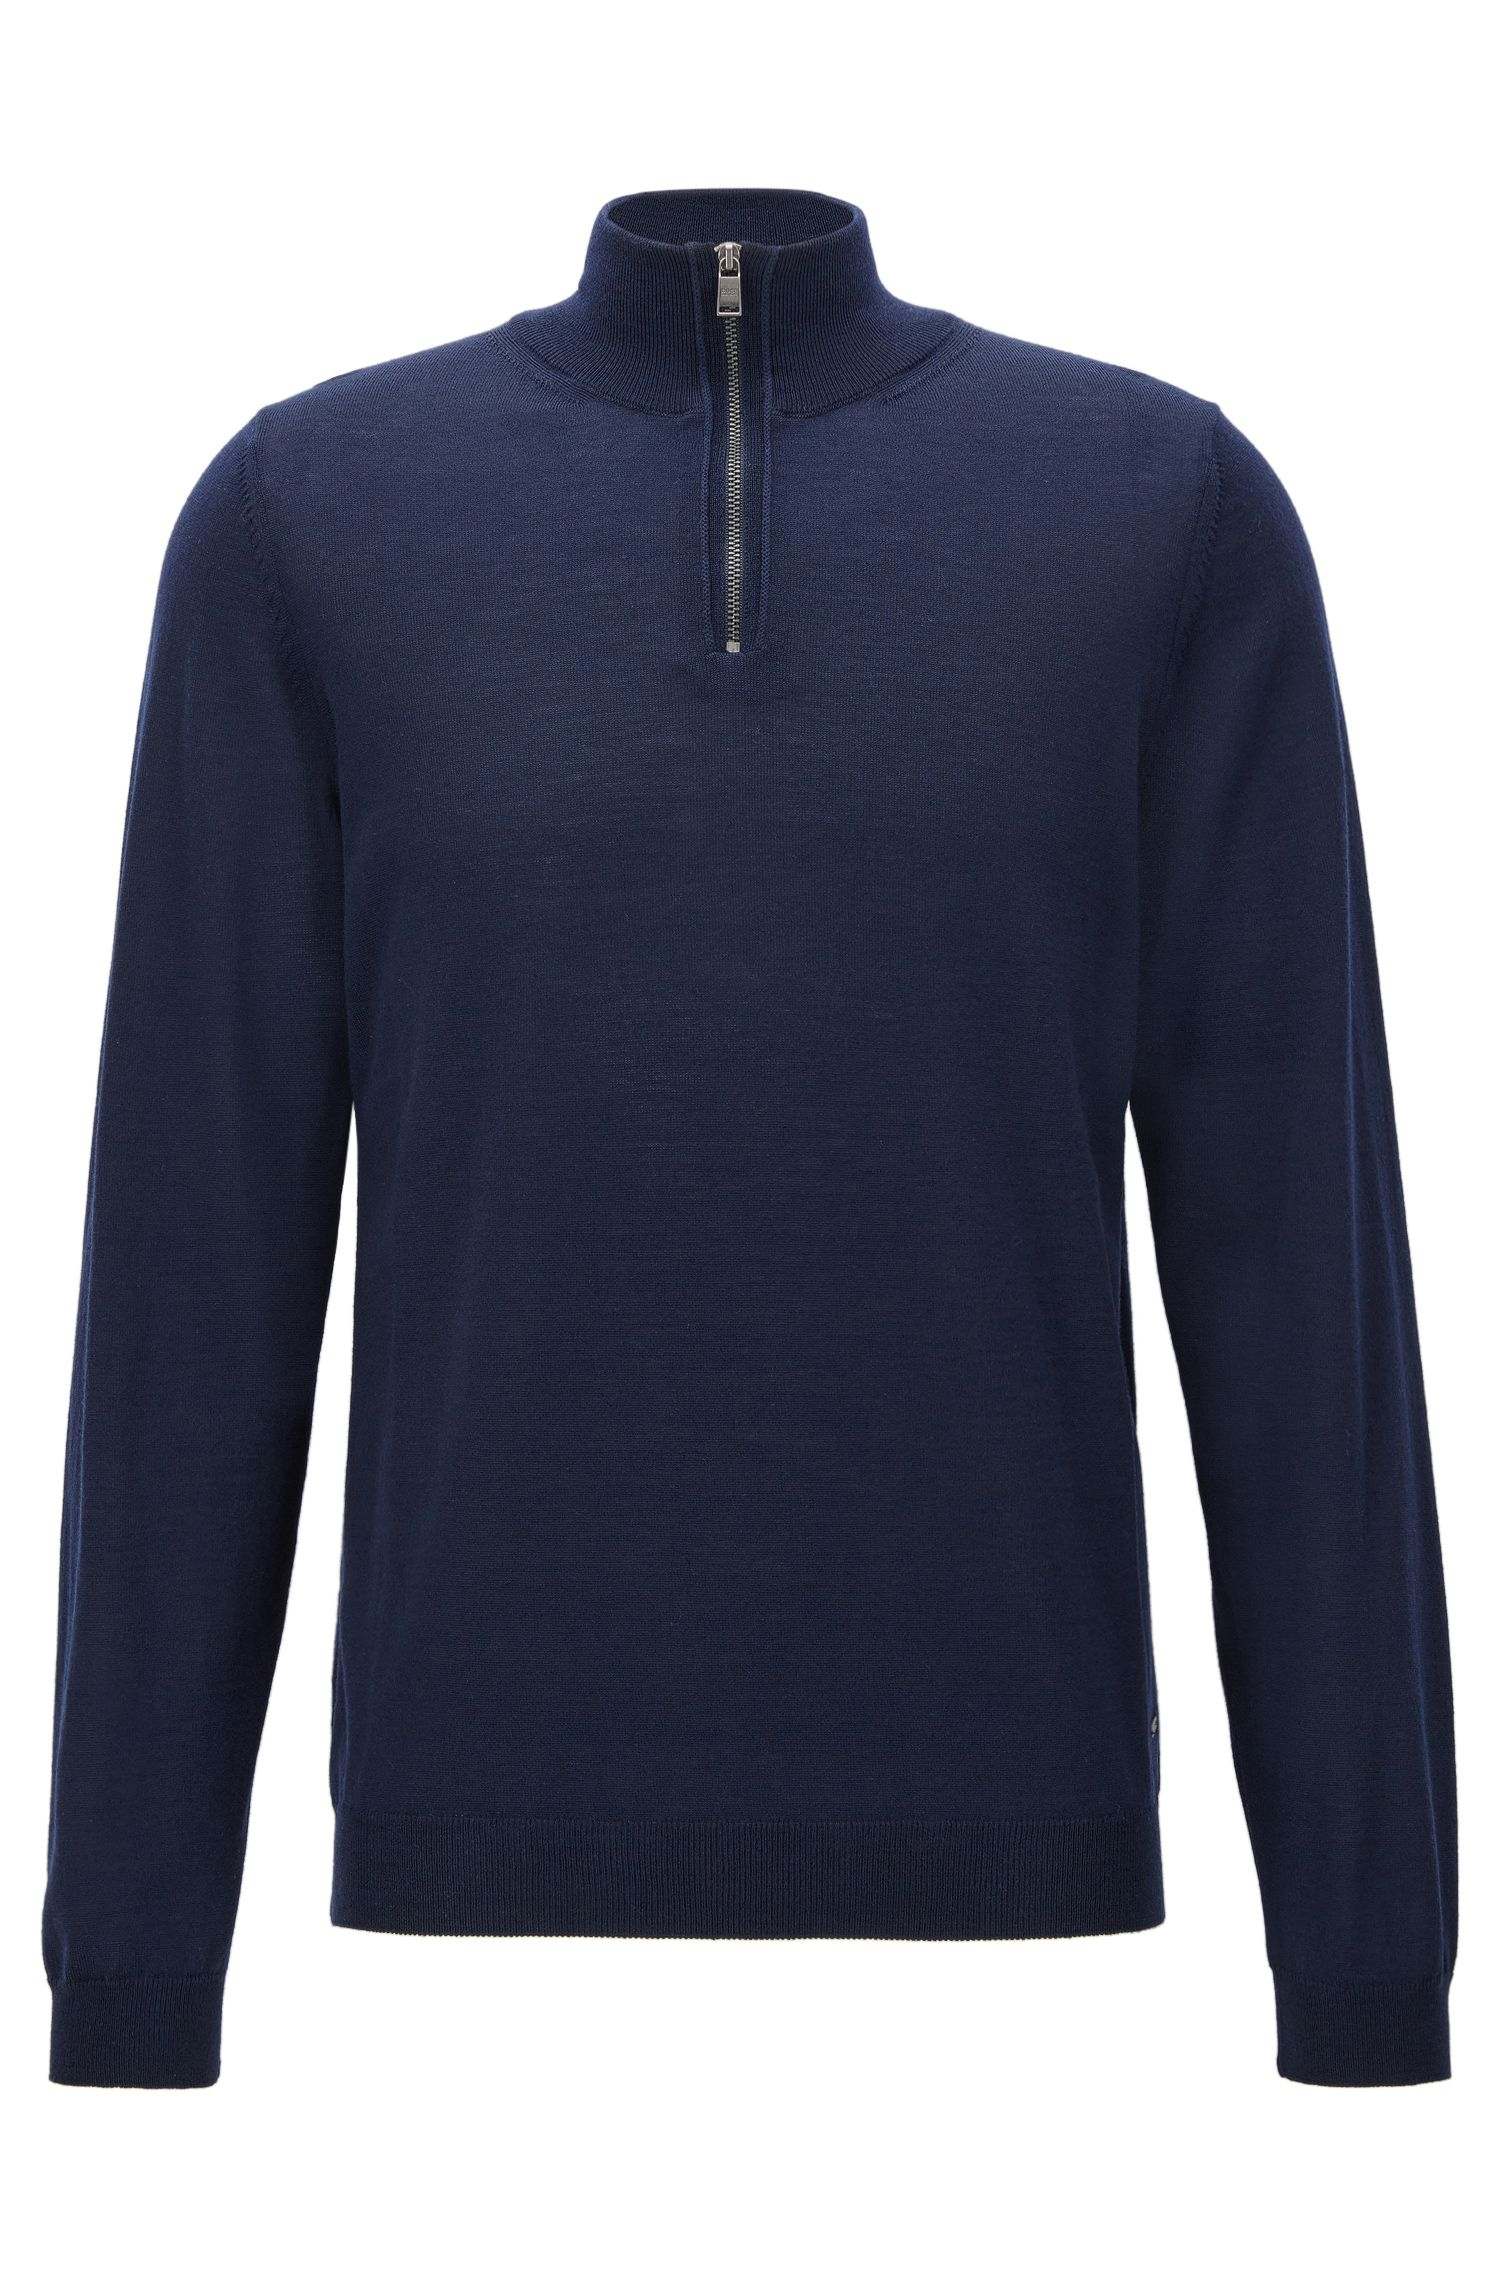 Maglione slim fit con colletto con zip in lana merino